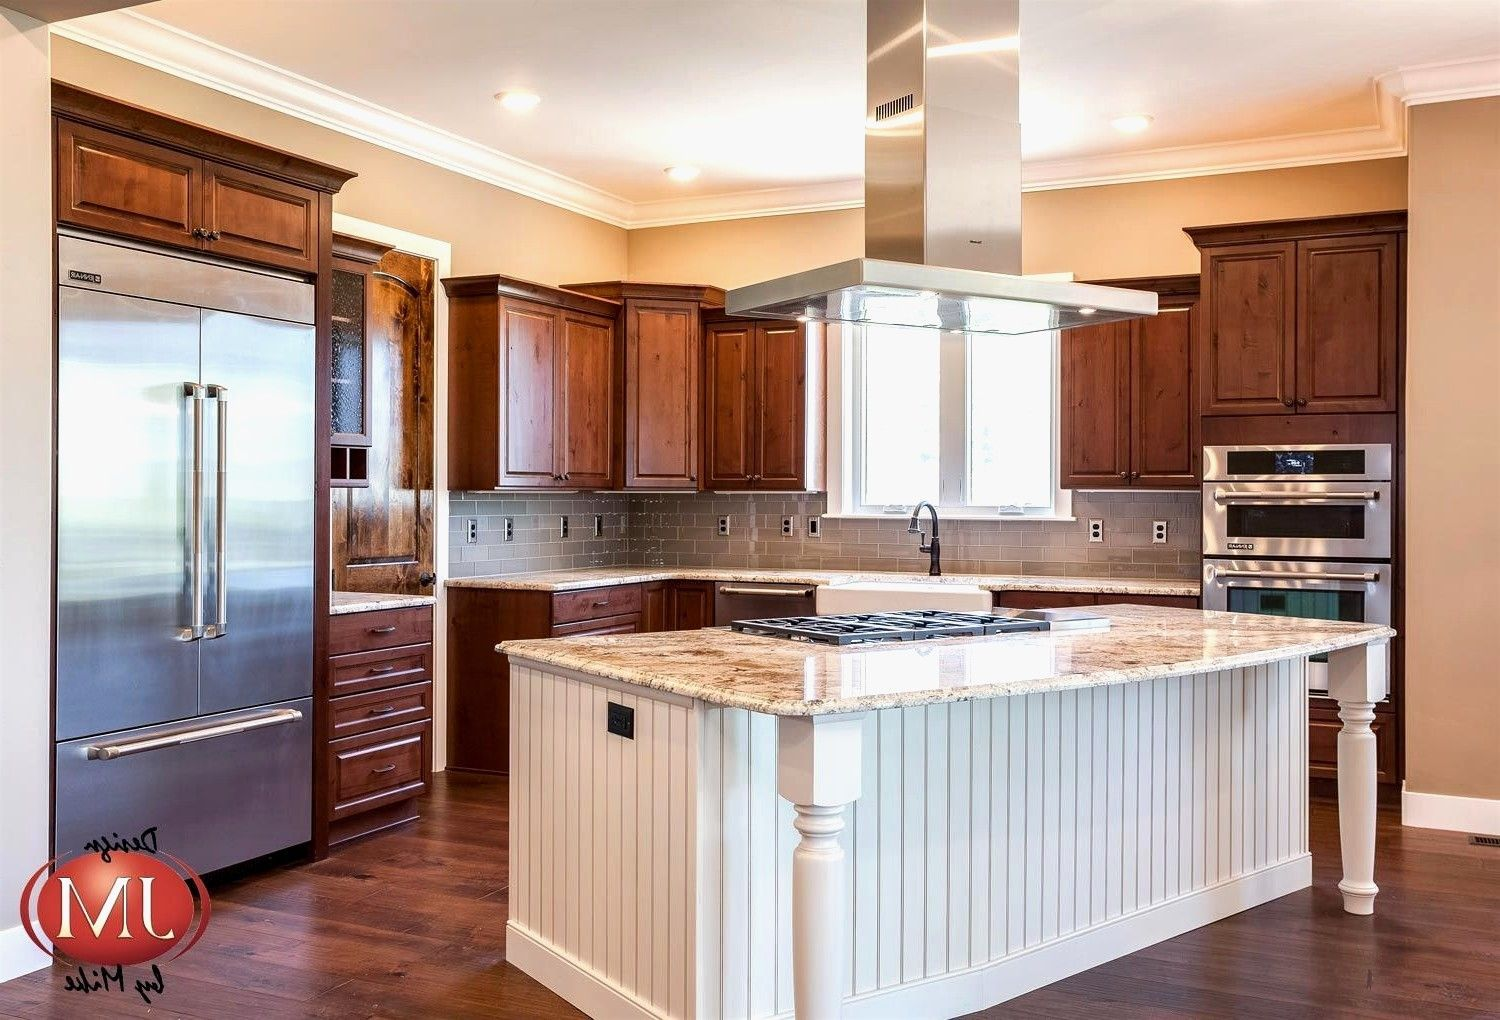 Kitchen Remodeling: Planning and Ideas | luxury kitchens ... on ideas for kitchen mantels, ideas for kitchen doors, ideas for kitchen fireplaces, ideas for kitchen paint, ideas for kitchen appliances, ideas for kitchen hood, ideas for kitchen painting, ideas for kitchen sinks, kitchen ideas with light wood cabinets, ideas for kitchen carpet, ideas for remodeling your kitchen, ideas for kitchen showers, ideas for kitchen sideboards, ideas for kitchen countertops, kitchen backsplash ideas with cherry cabinets, ideas for kitchen walls, ideas for farmhouse kitchens, ideas for kitchen back splashes, ideas for kitchen seating, kitchen design ideas with cream cabinets,